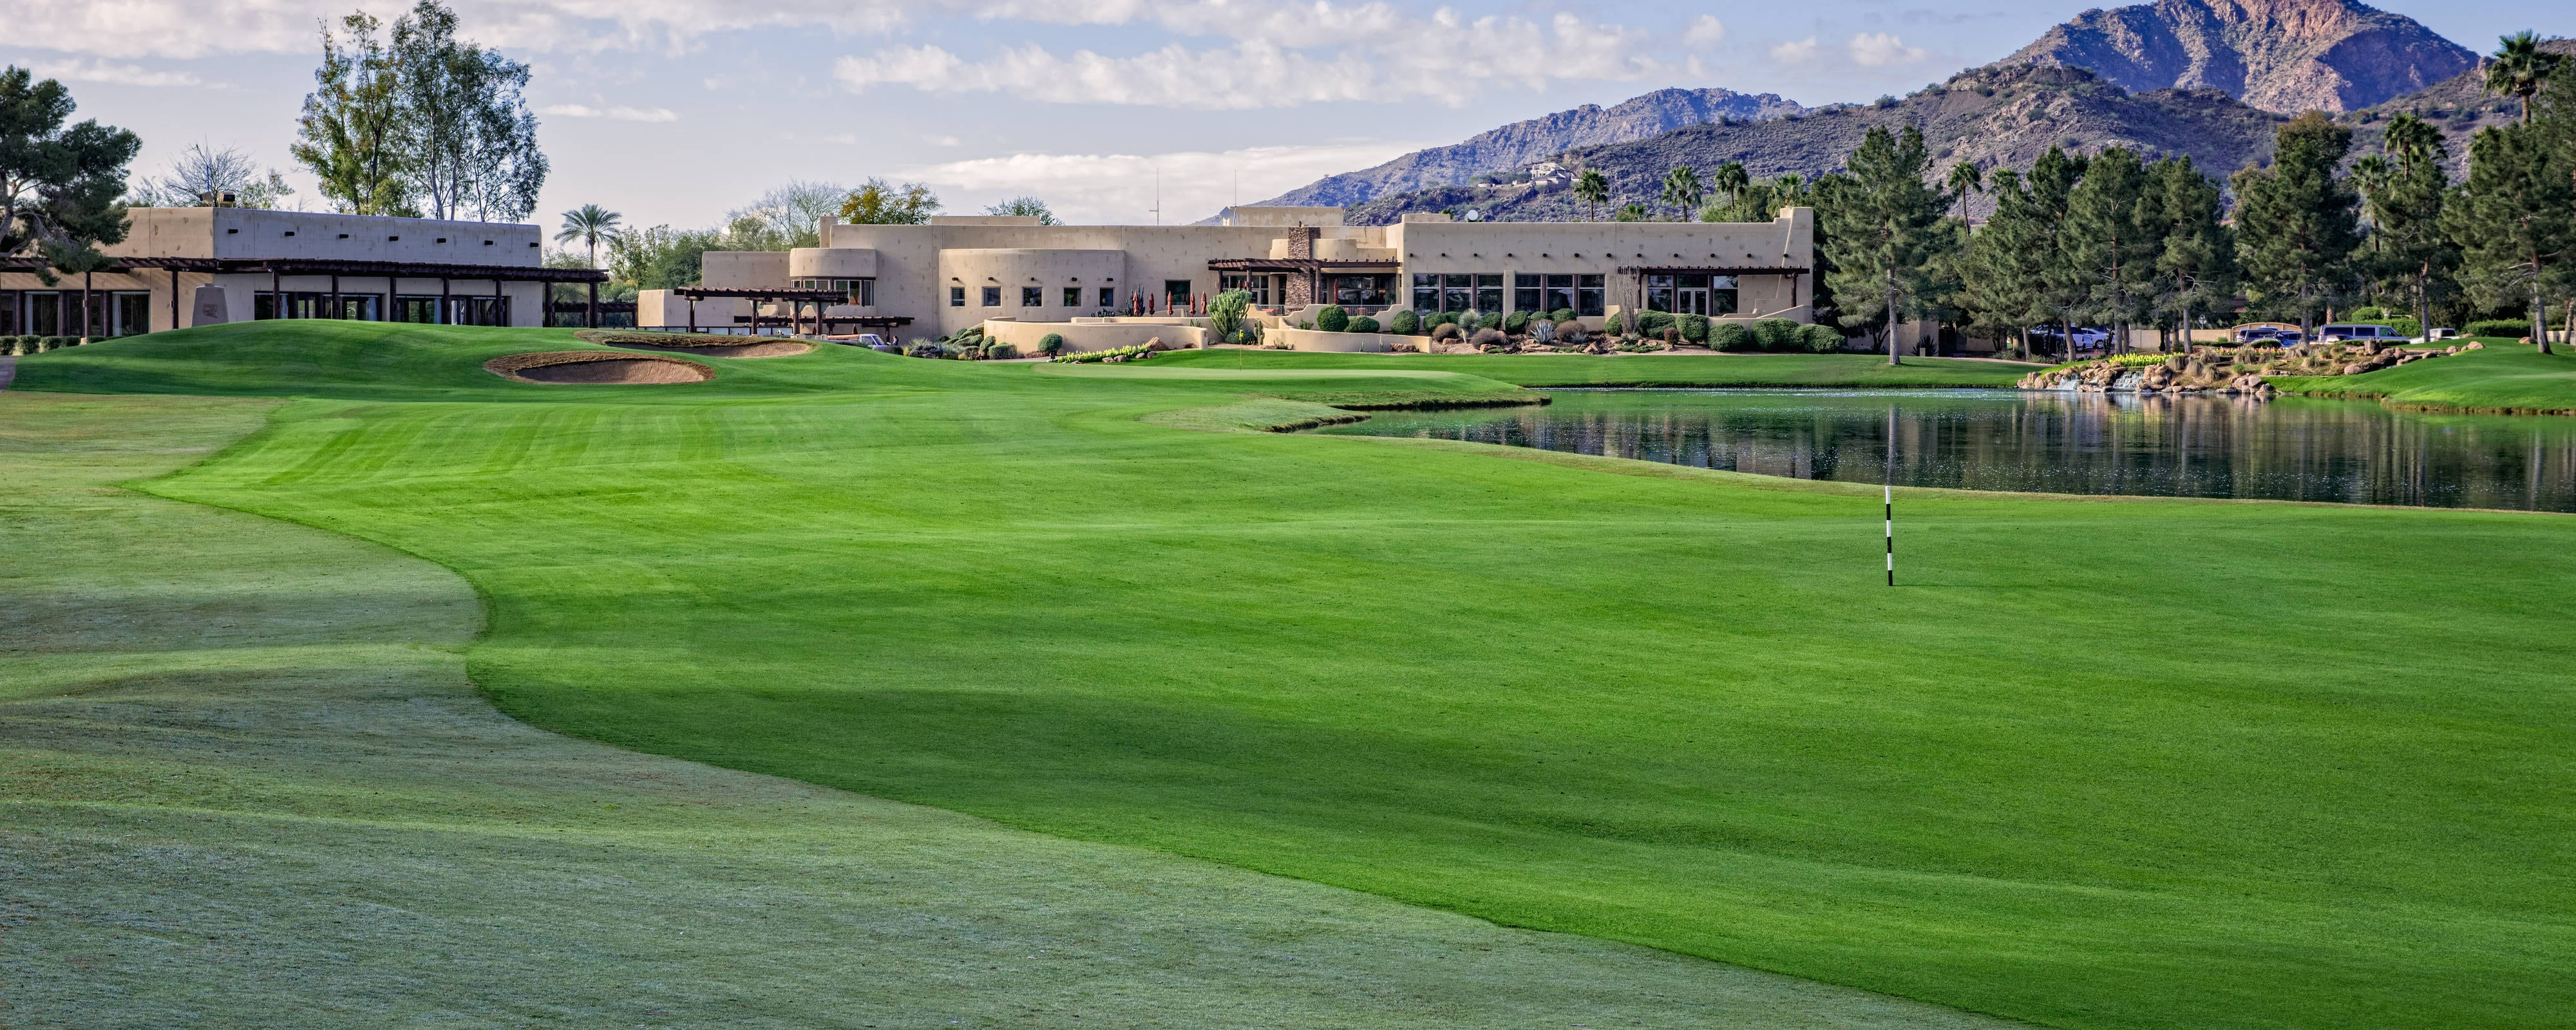 Get 29 Scottsdale Golf coupon codes and promo codes at CouponBirds. Click to enjoy the latest deals and coupons of Scottsdale Golf and save up to 70% when making purchase at checkout. Shop unecdown-5l5.ga and enjoy your savings of November, now!